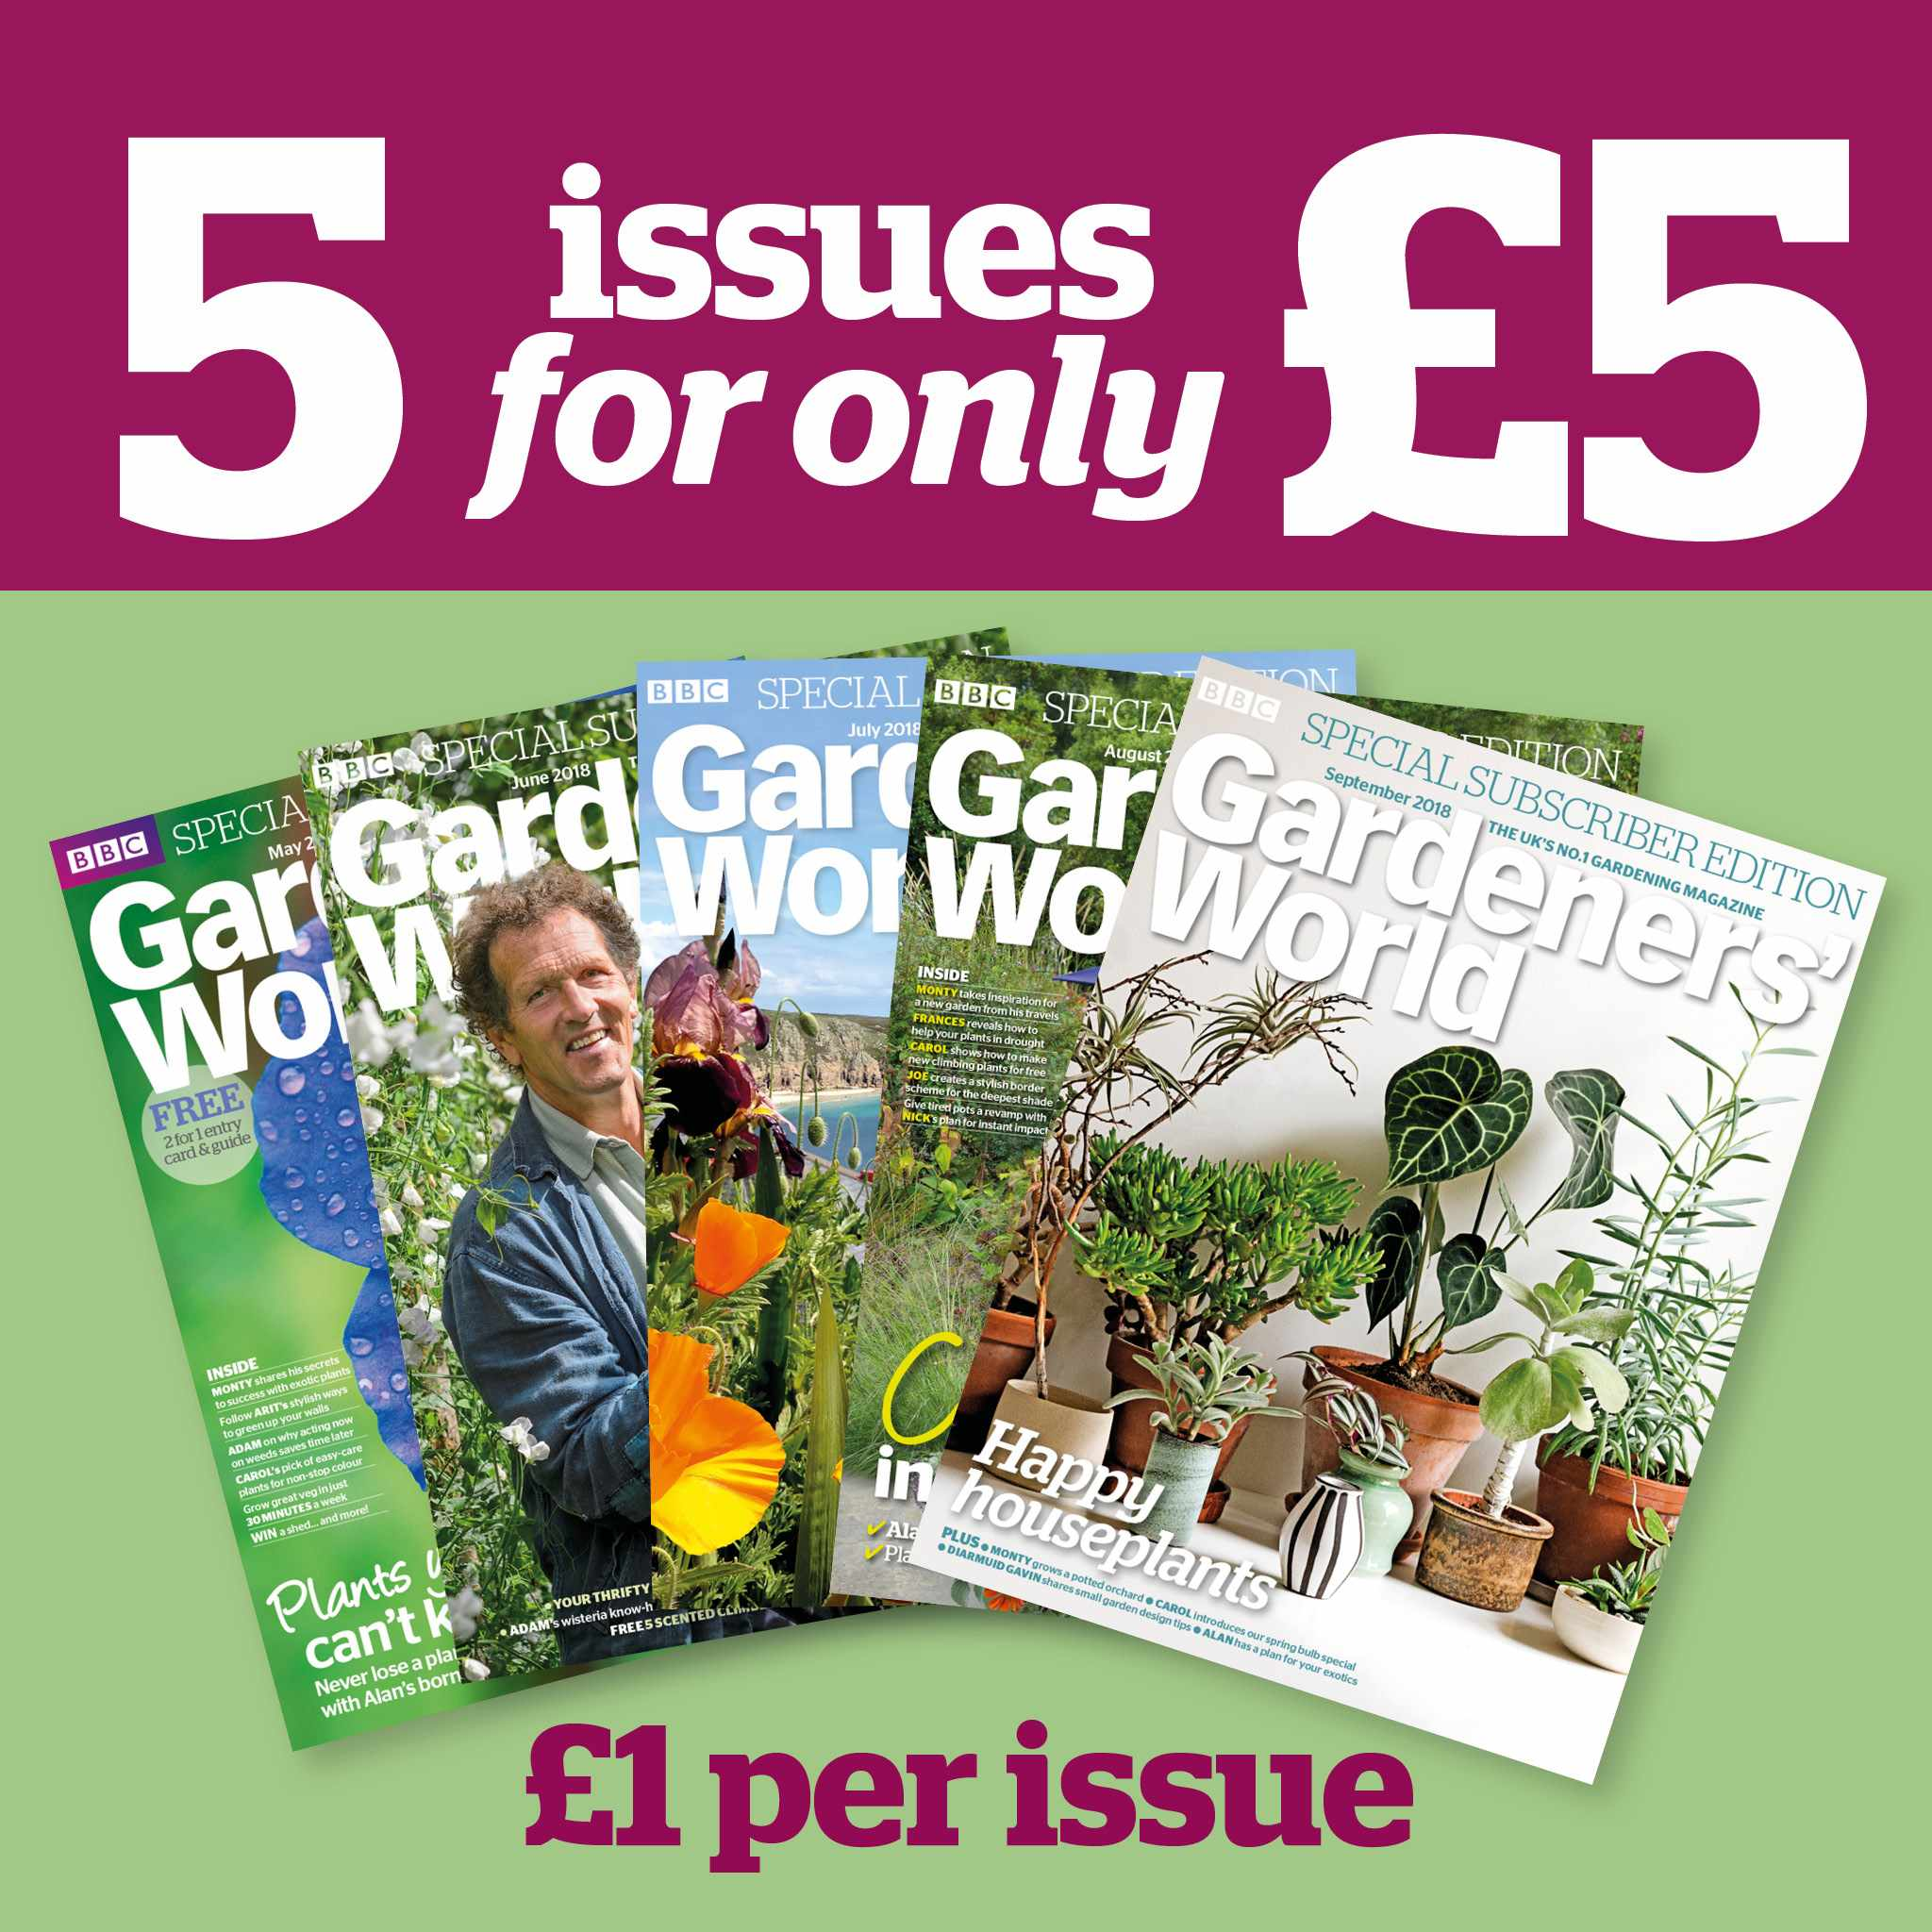 Gardeners' World Magazine Five issues for £5